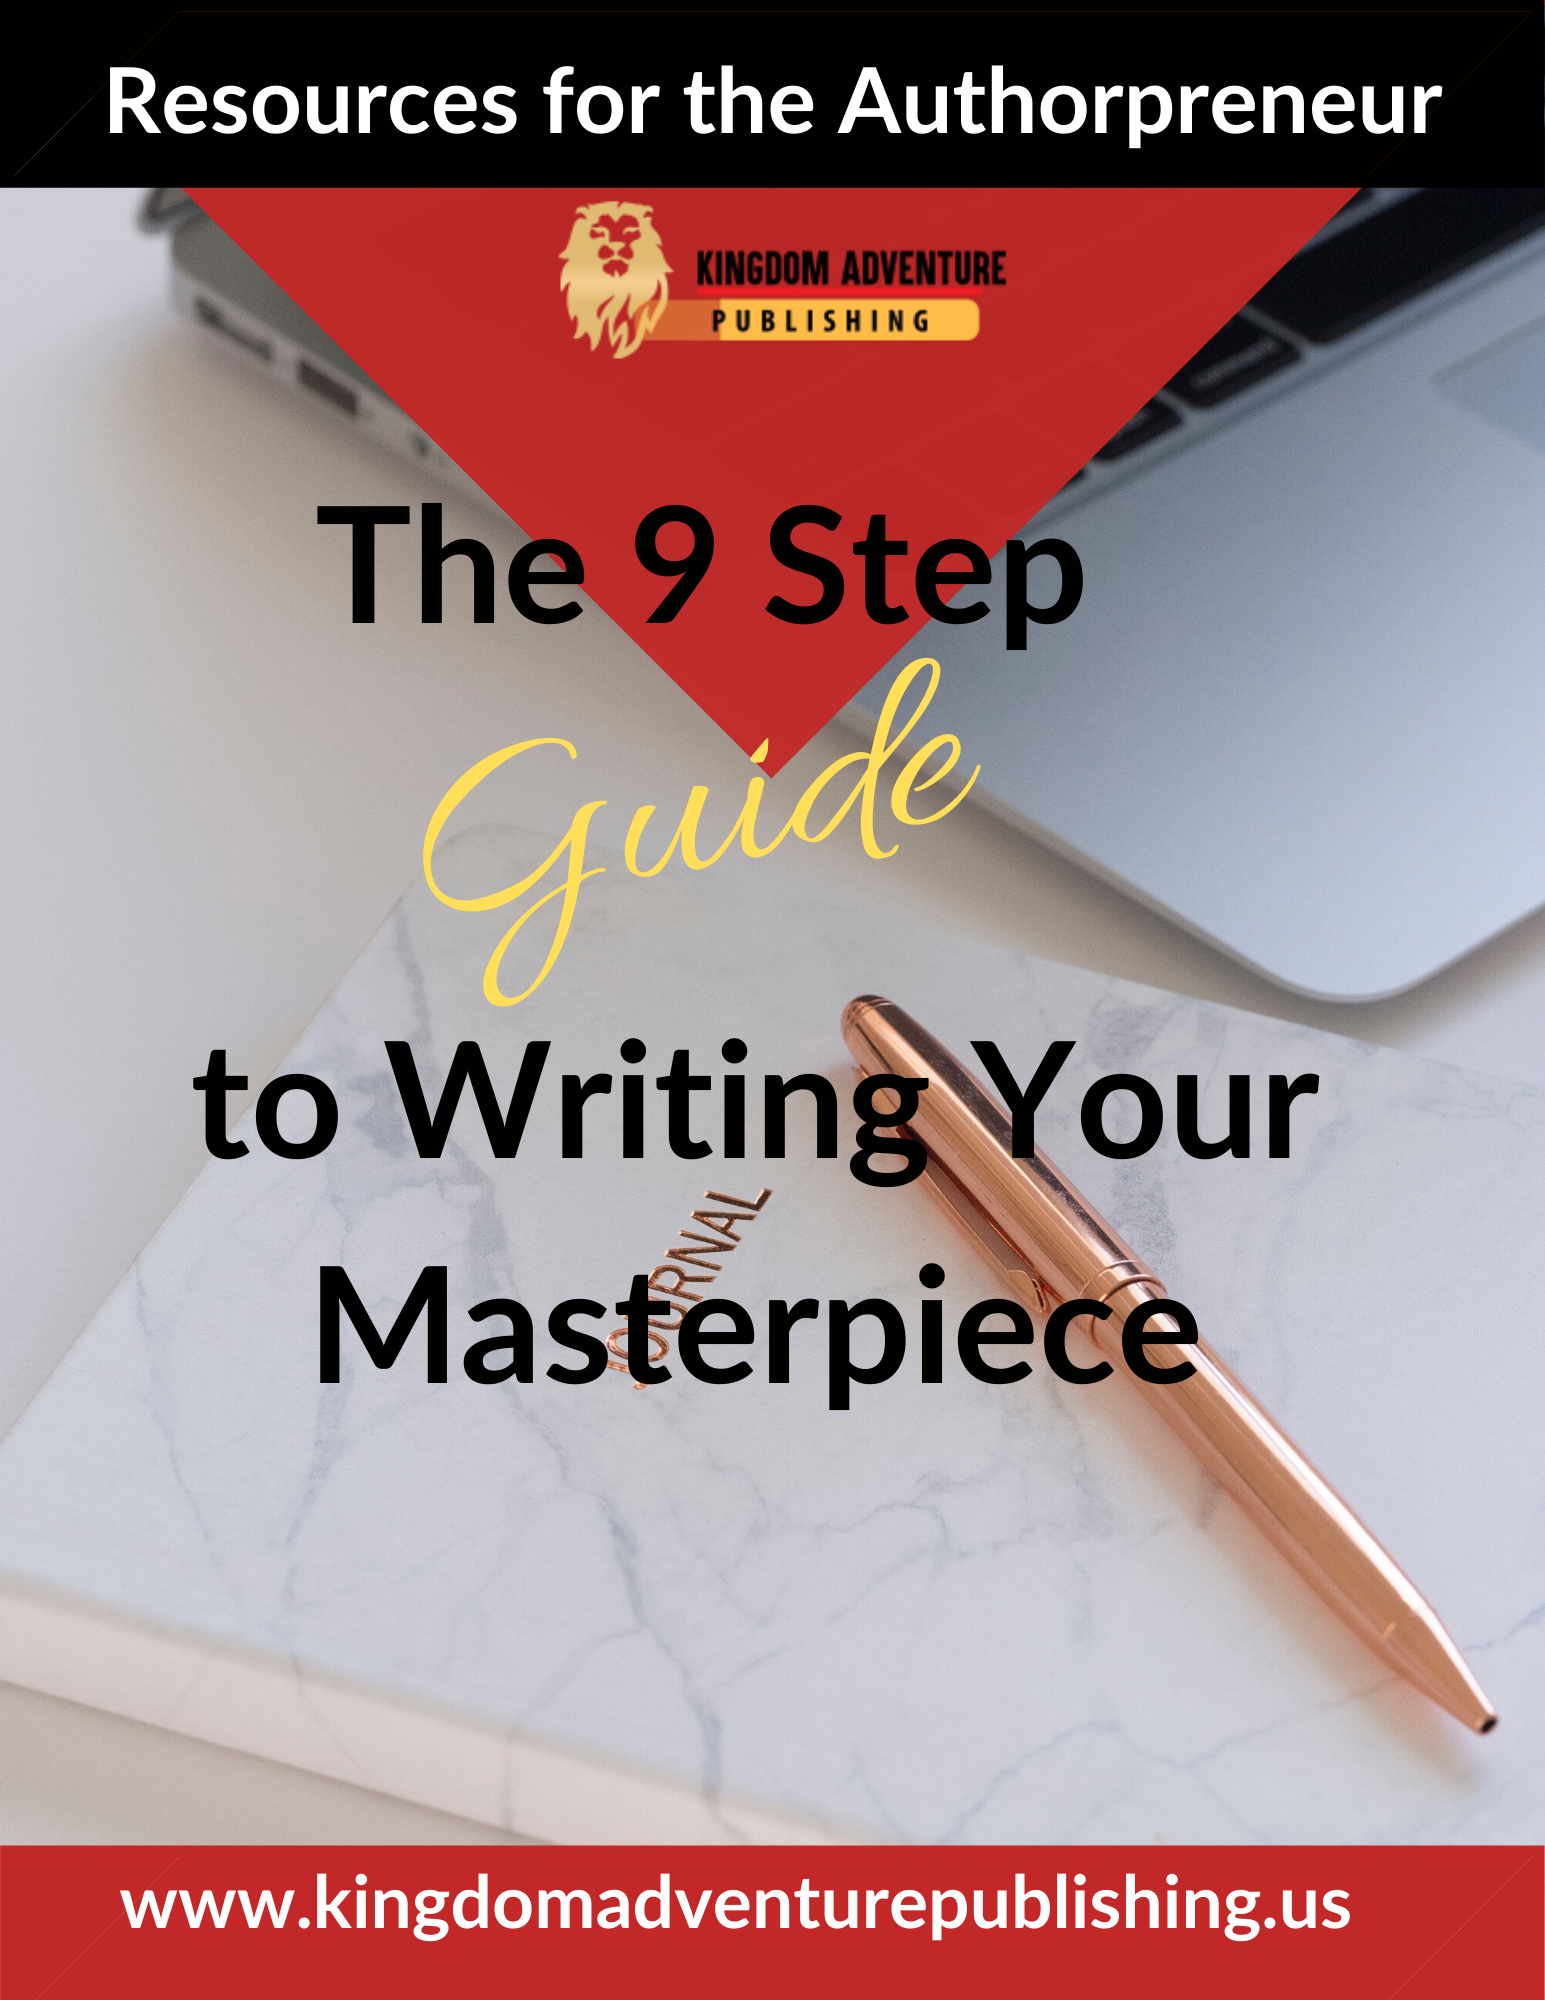 The 9 Step Guide to Writing Your Masterpiece